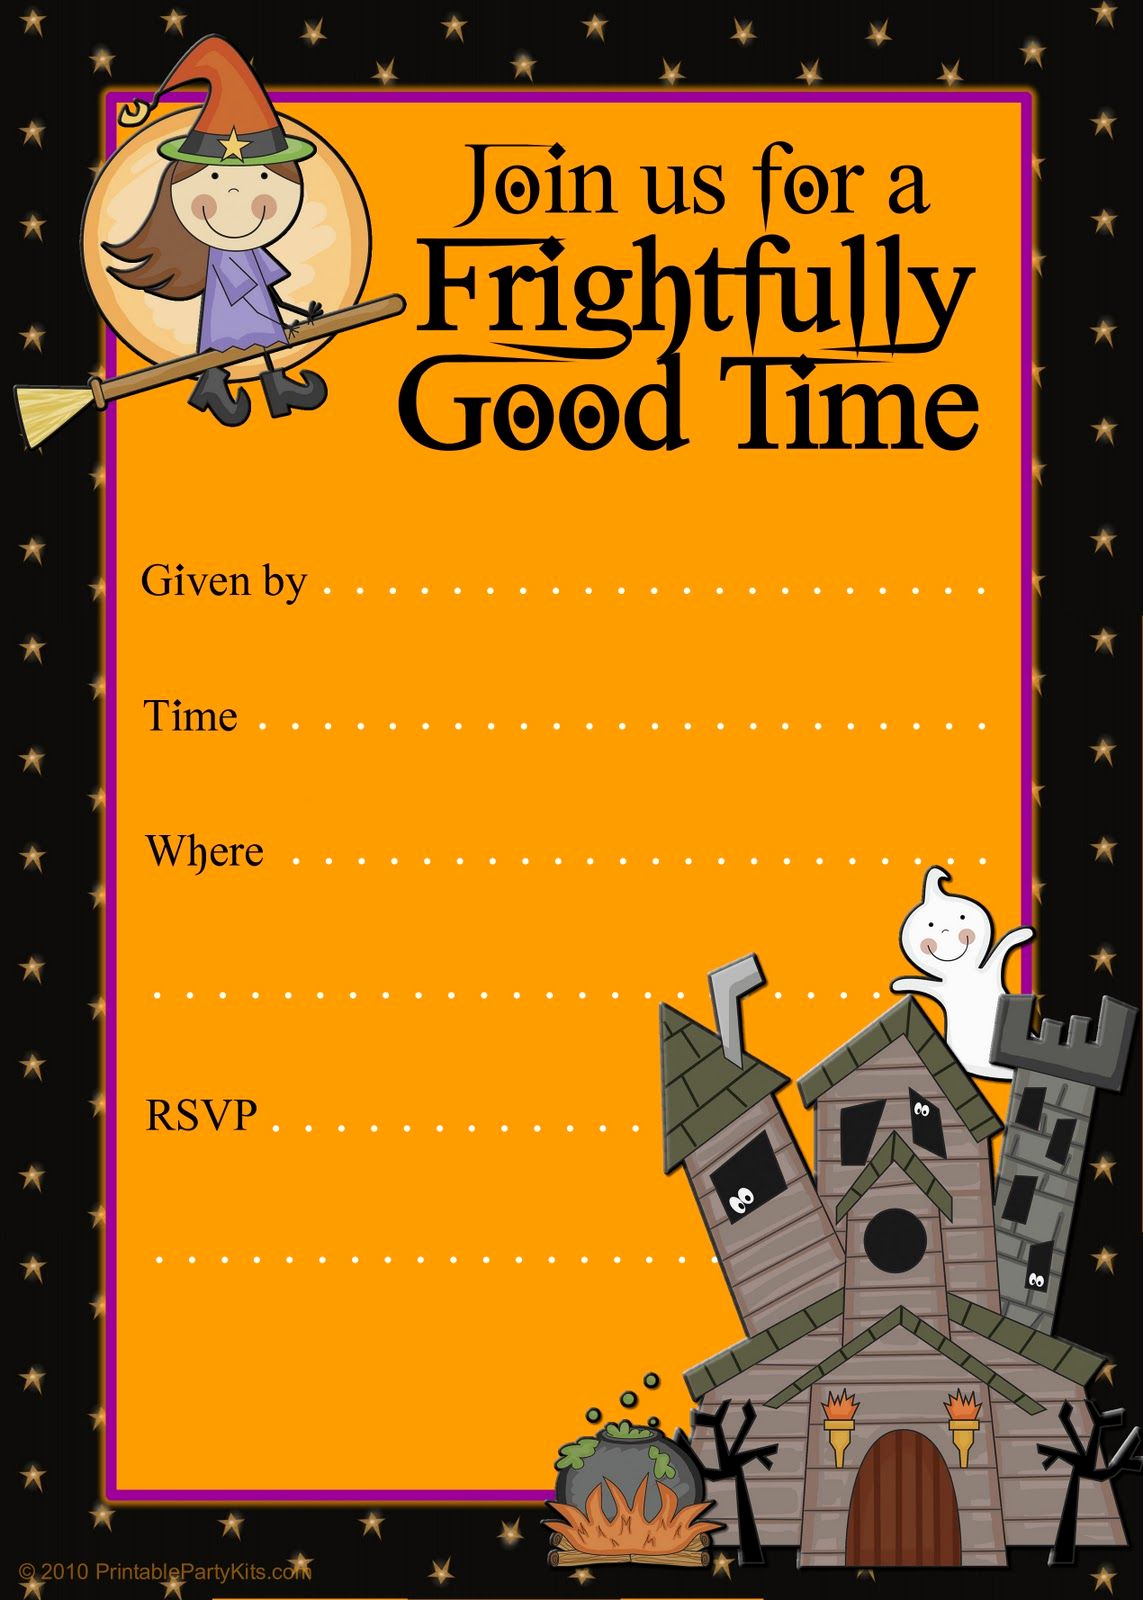 Free Printable Halloween Invitation Template Luxury Free Halloween Flyer Invitations Printable